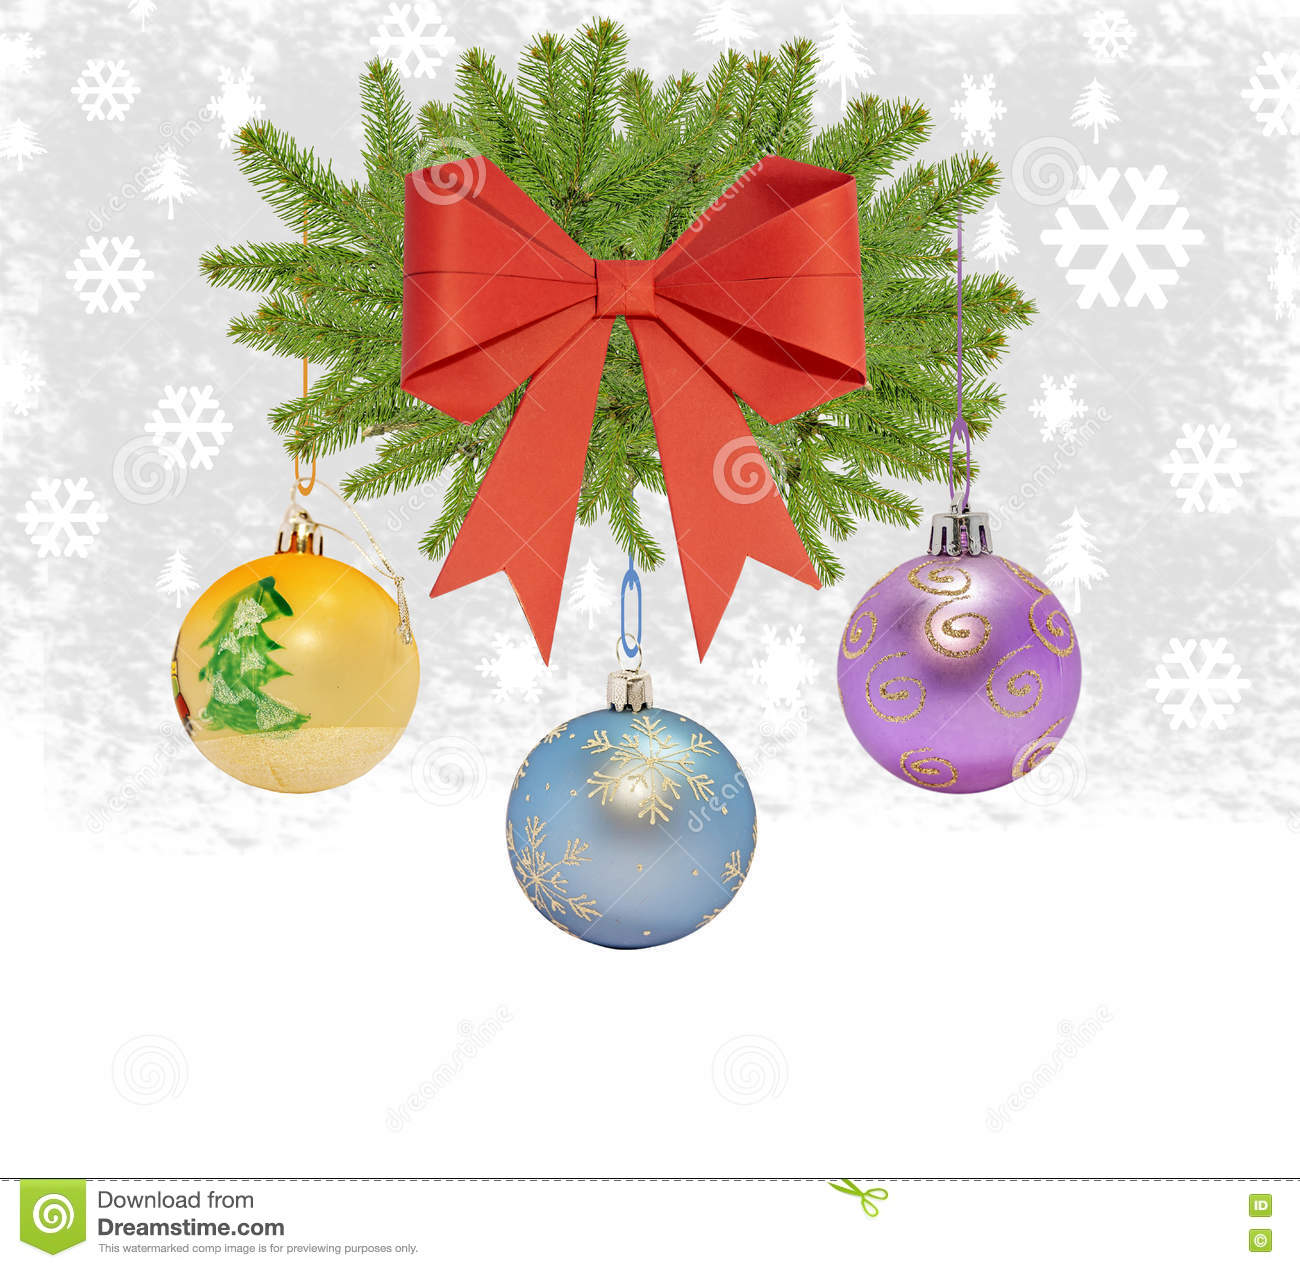 Several christmas decorative ball with bow and pine tree